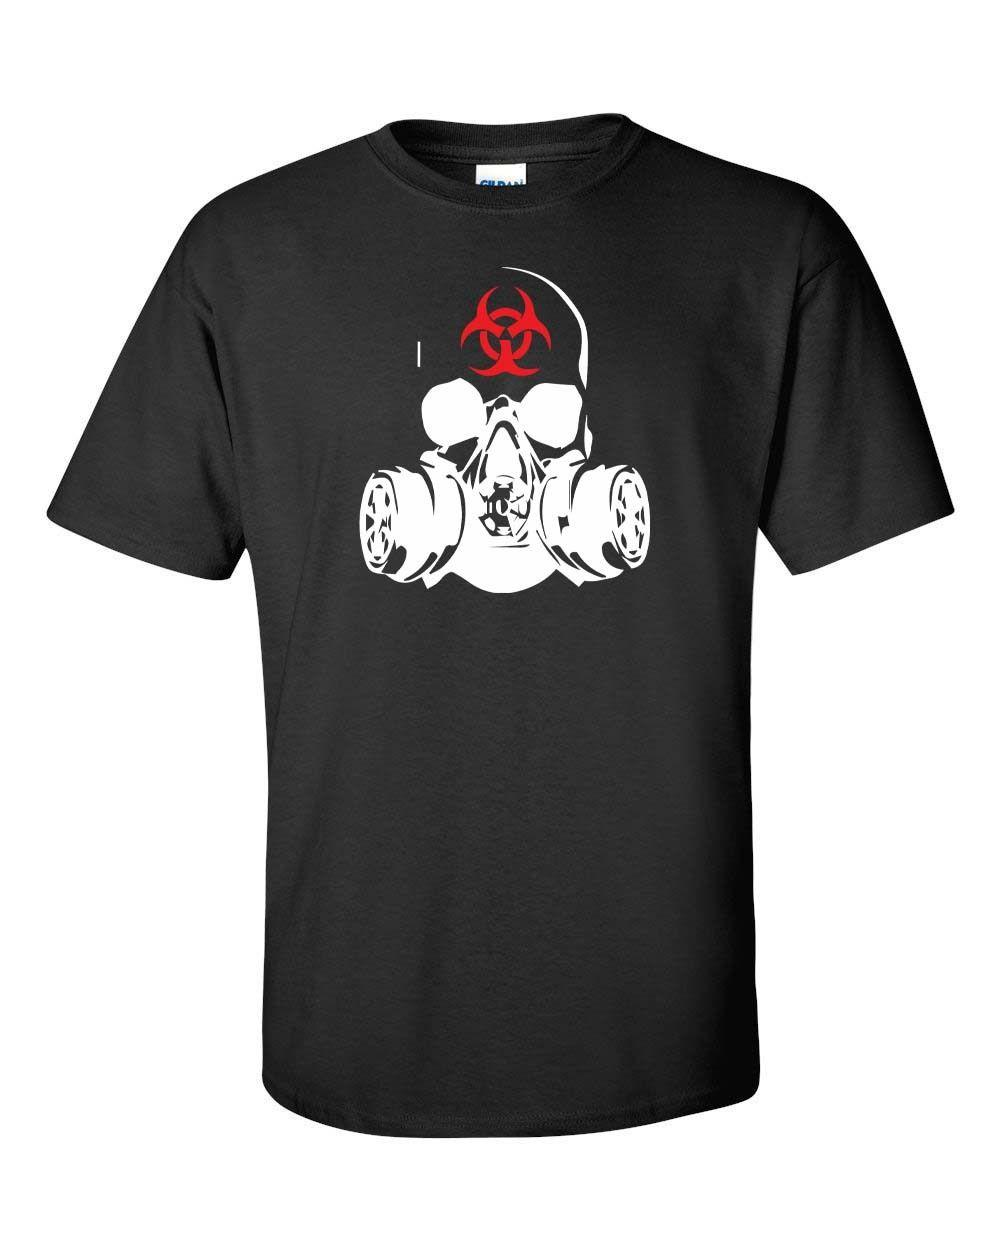 Zombie Gas Mask Bio Hazard Zombies Warfare Dead Men's Tee Shirt WHITE PRINT19 Cool Casual pride t shirt